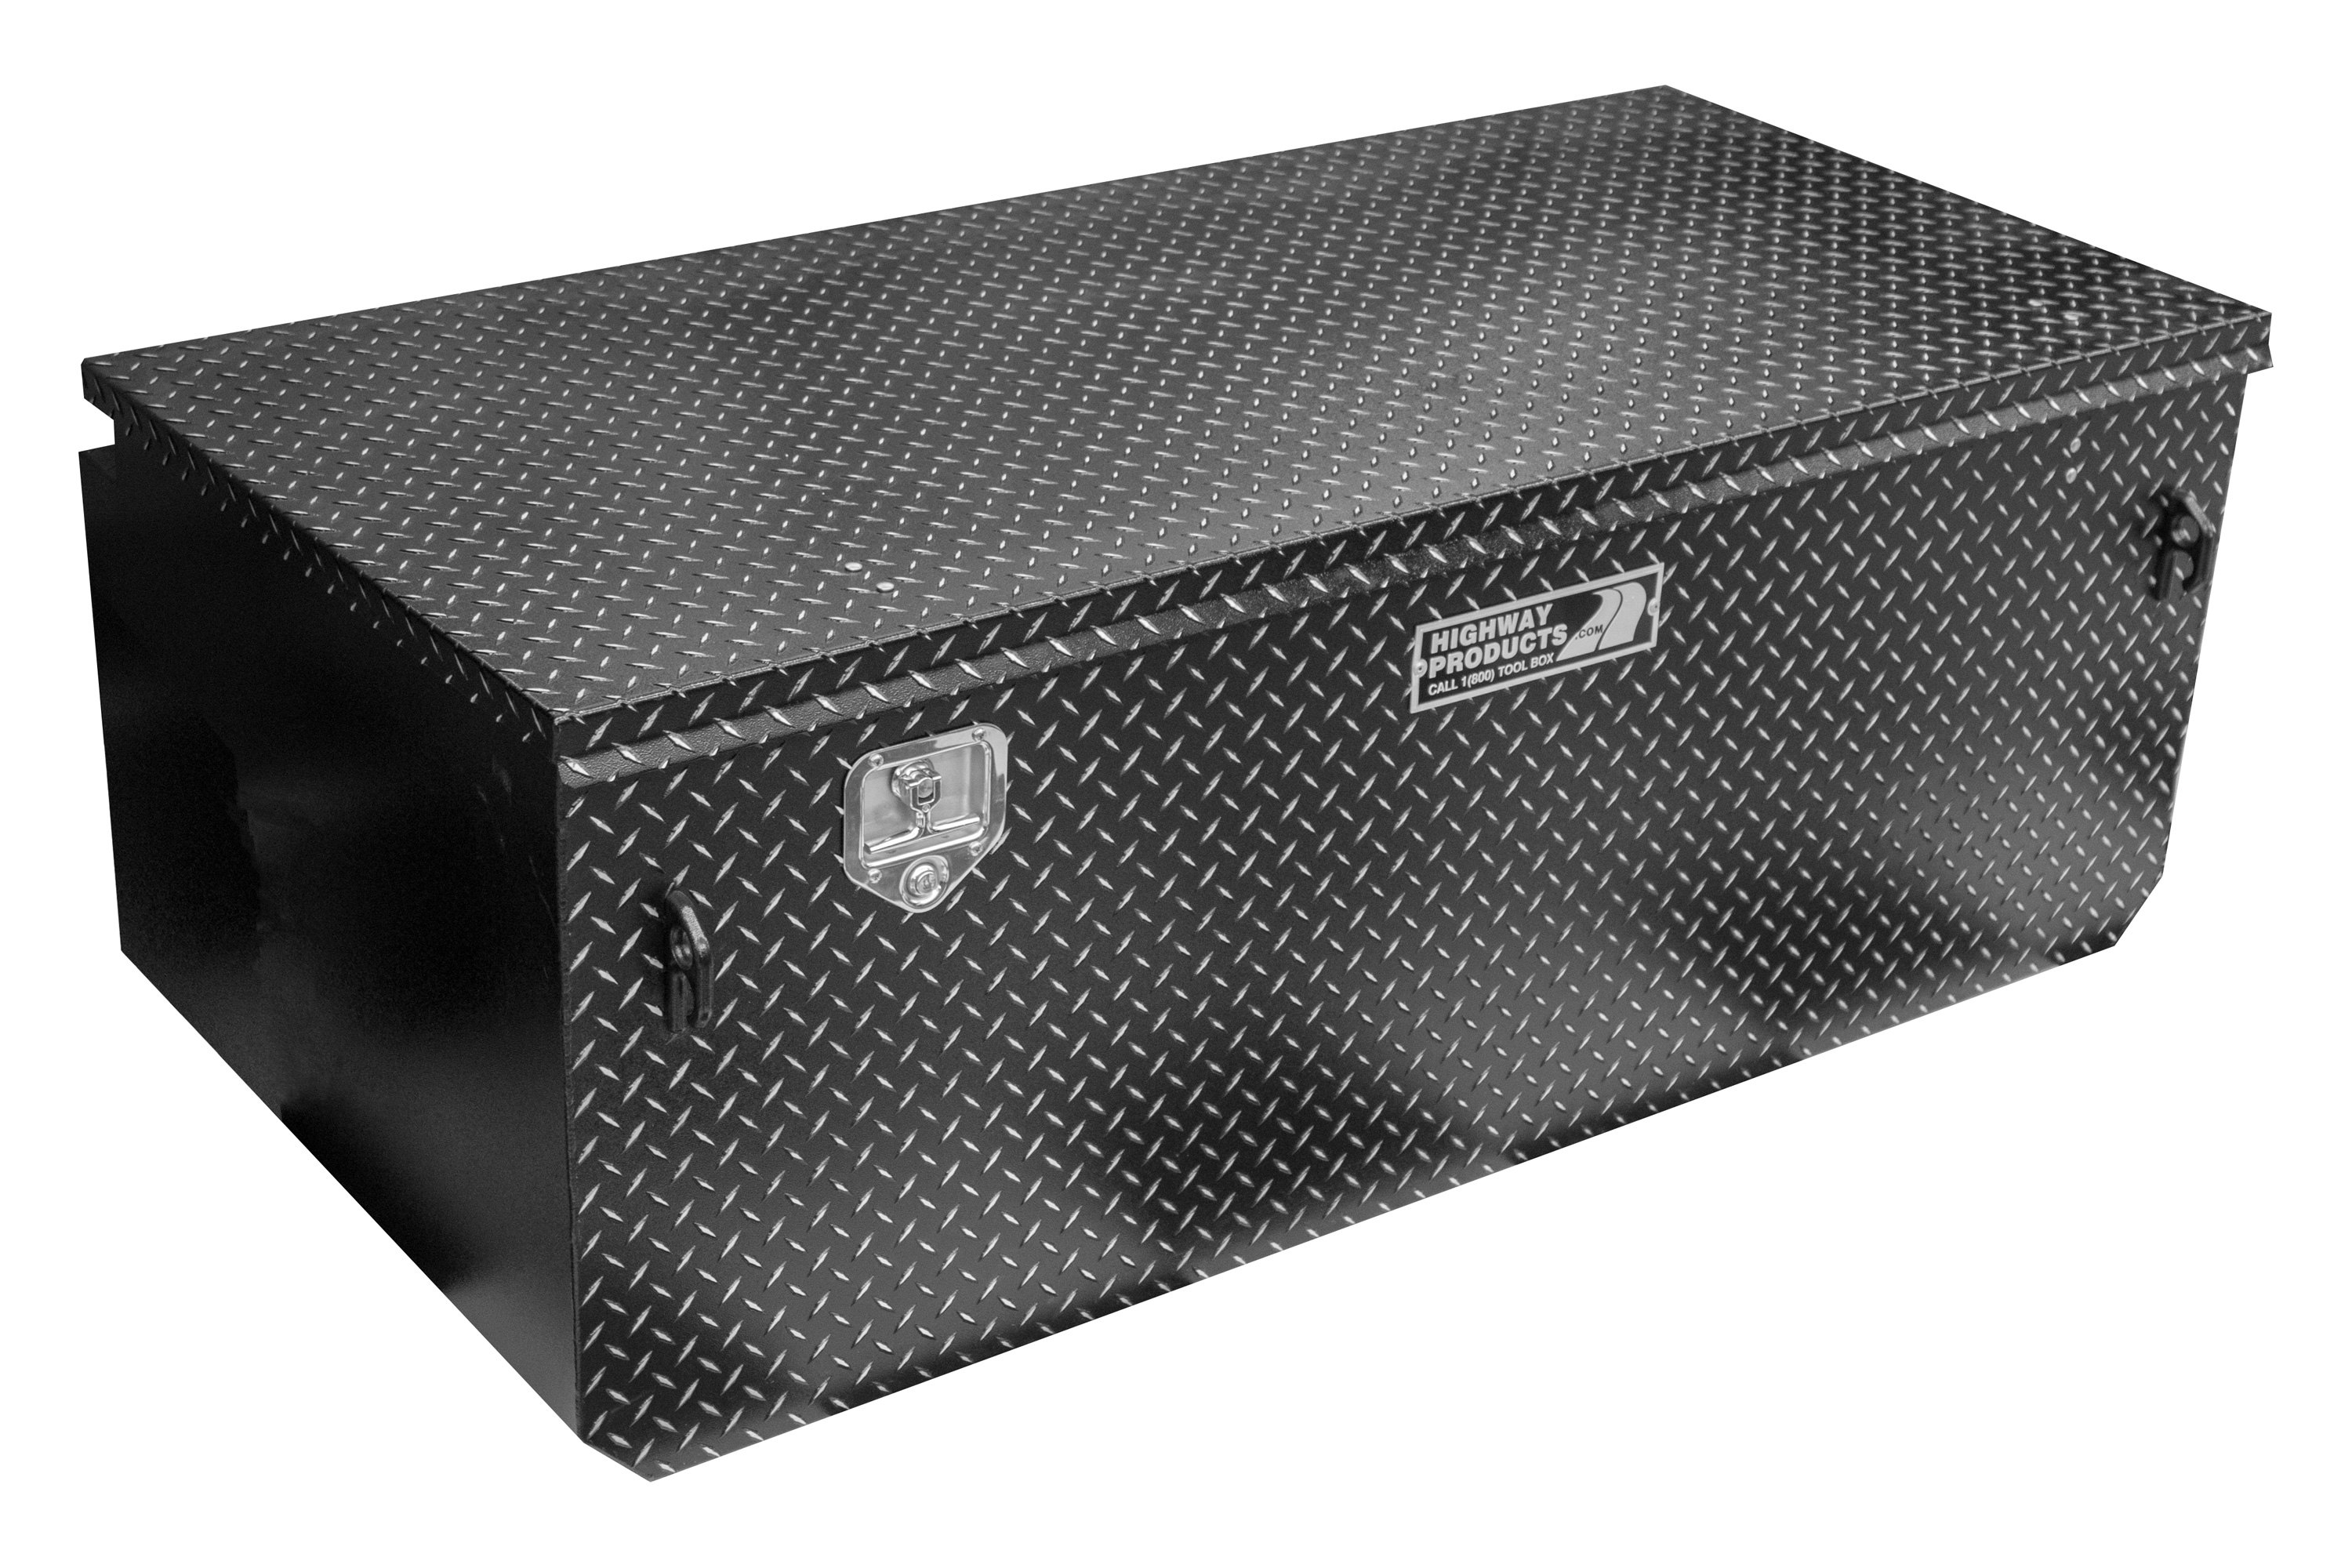 highway products 3022 002 bk62s 5th wheel tool box